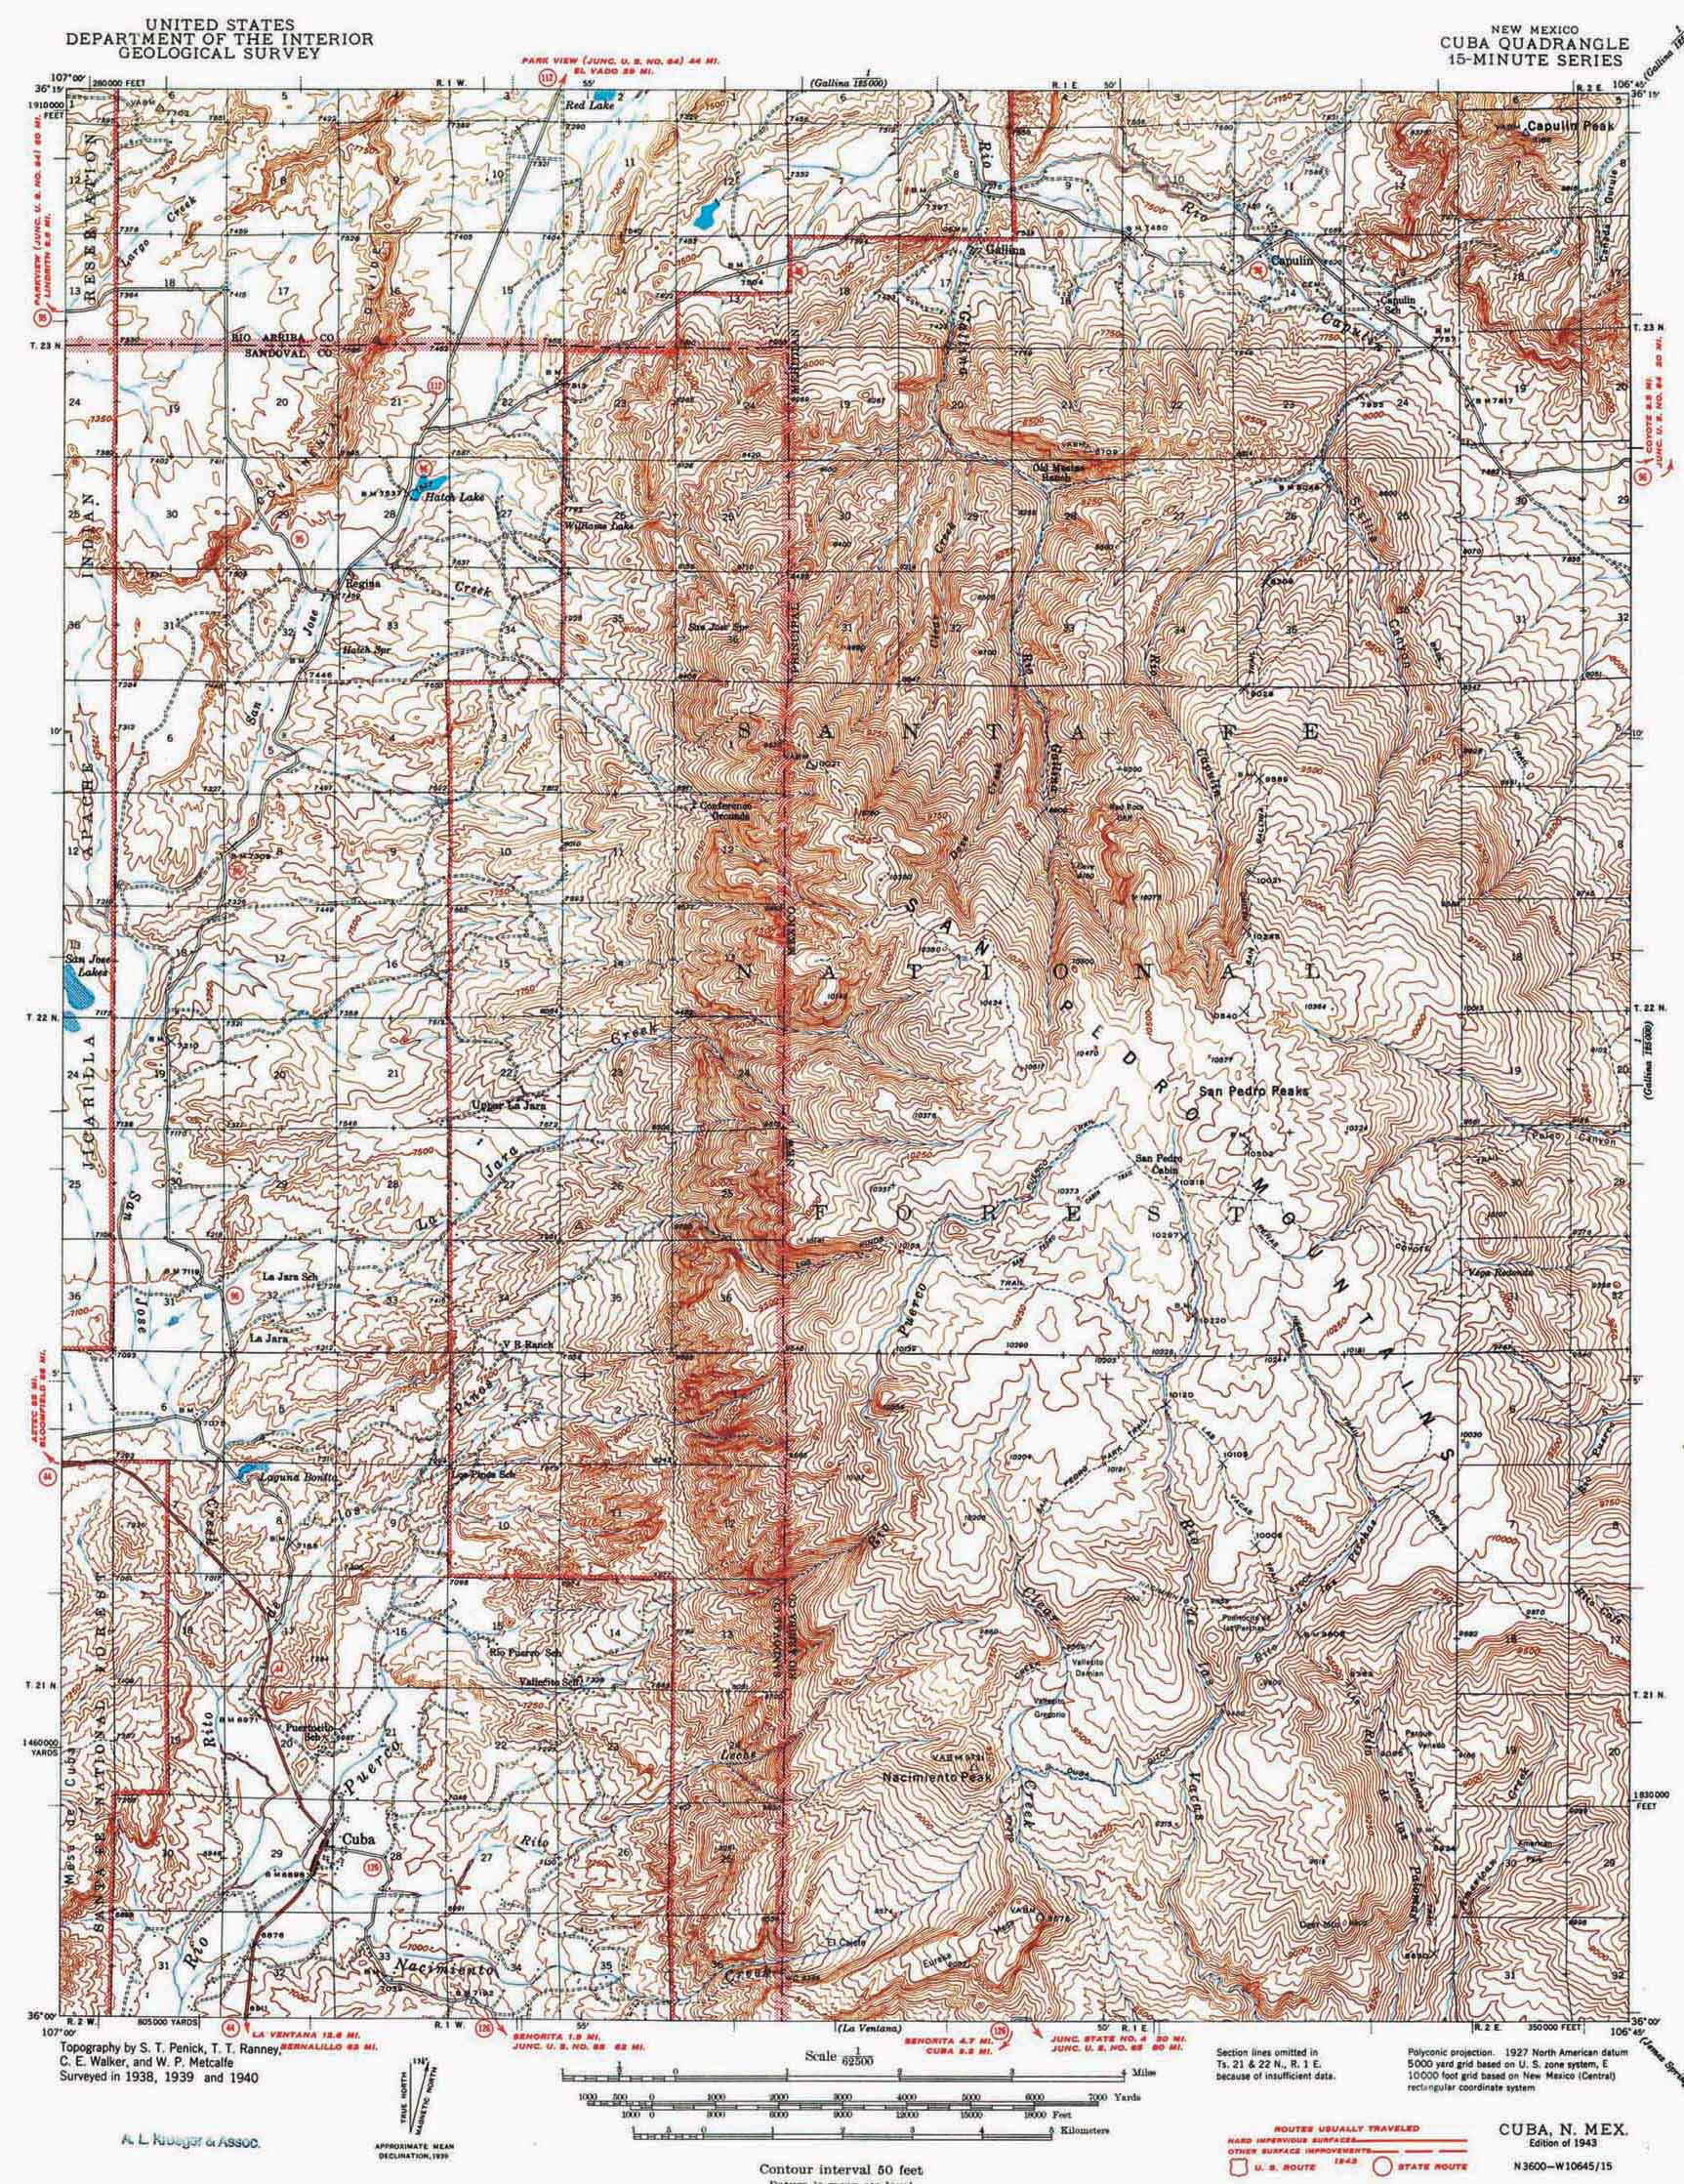 Collection C 007 Usgs Topographic Map Of Cuba N M At The Center